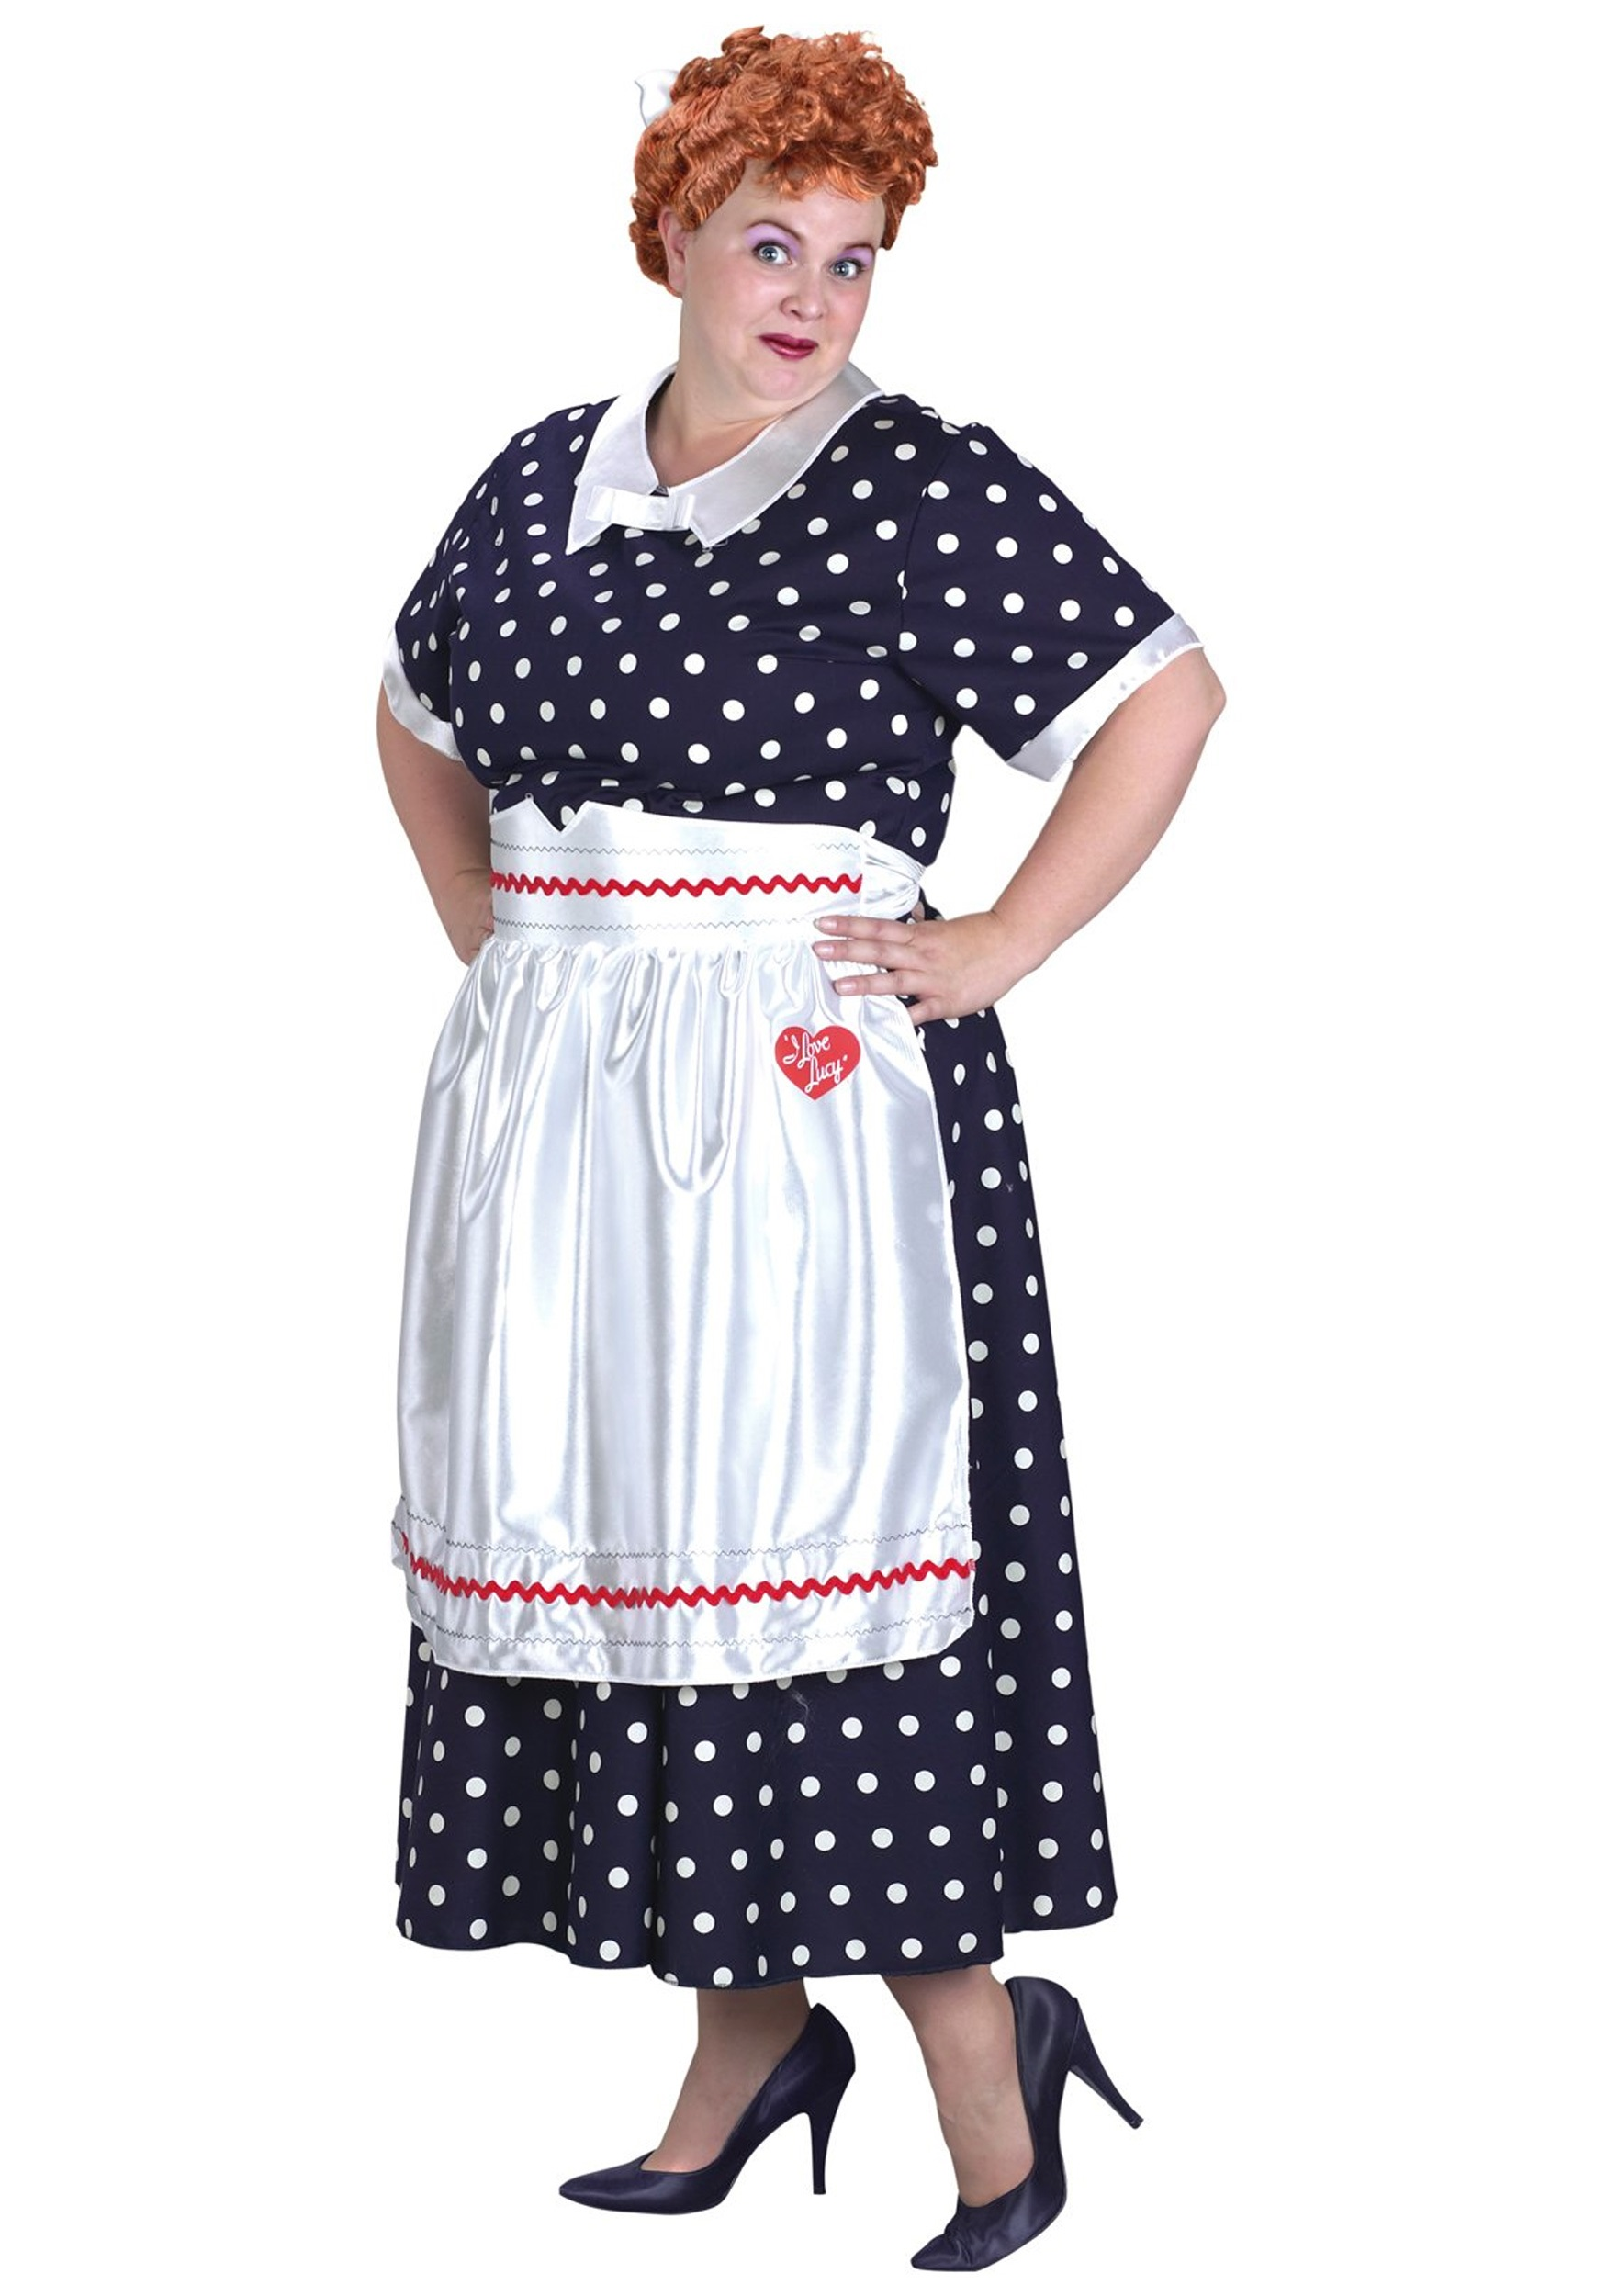 592cebe3a4296 plus-size-i-love-lucy-costume.jpg